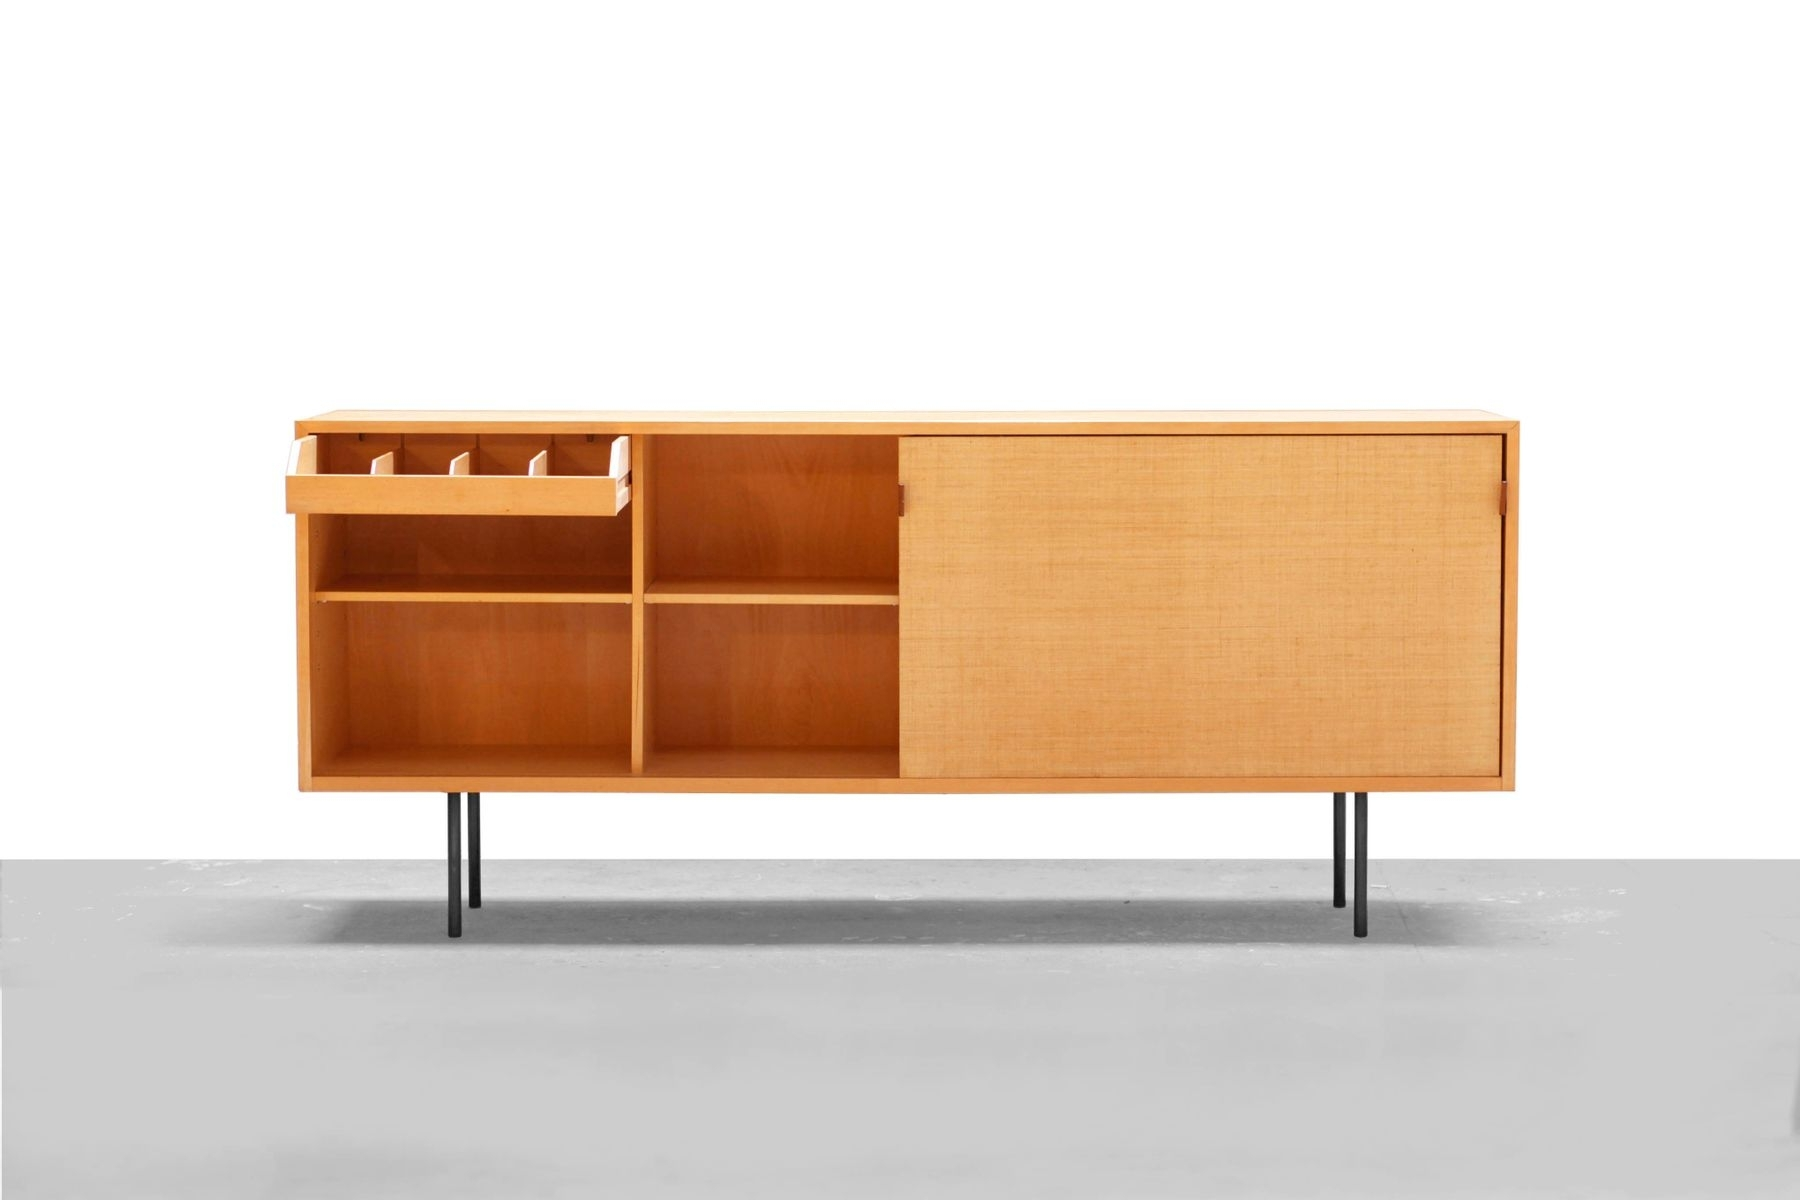 No. 118 Sideboardflorence Knoll For Knoll International, 1950S regarding Girard 4 Door Sideboards (Image 17 of 30)